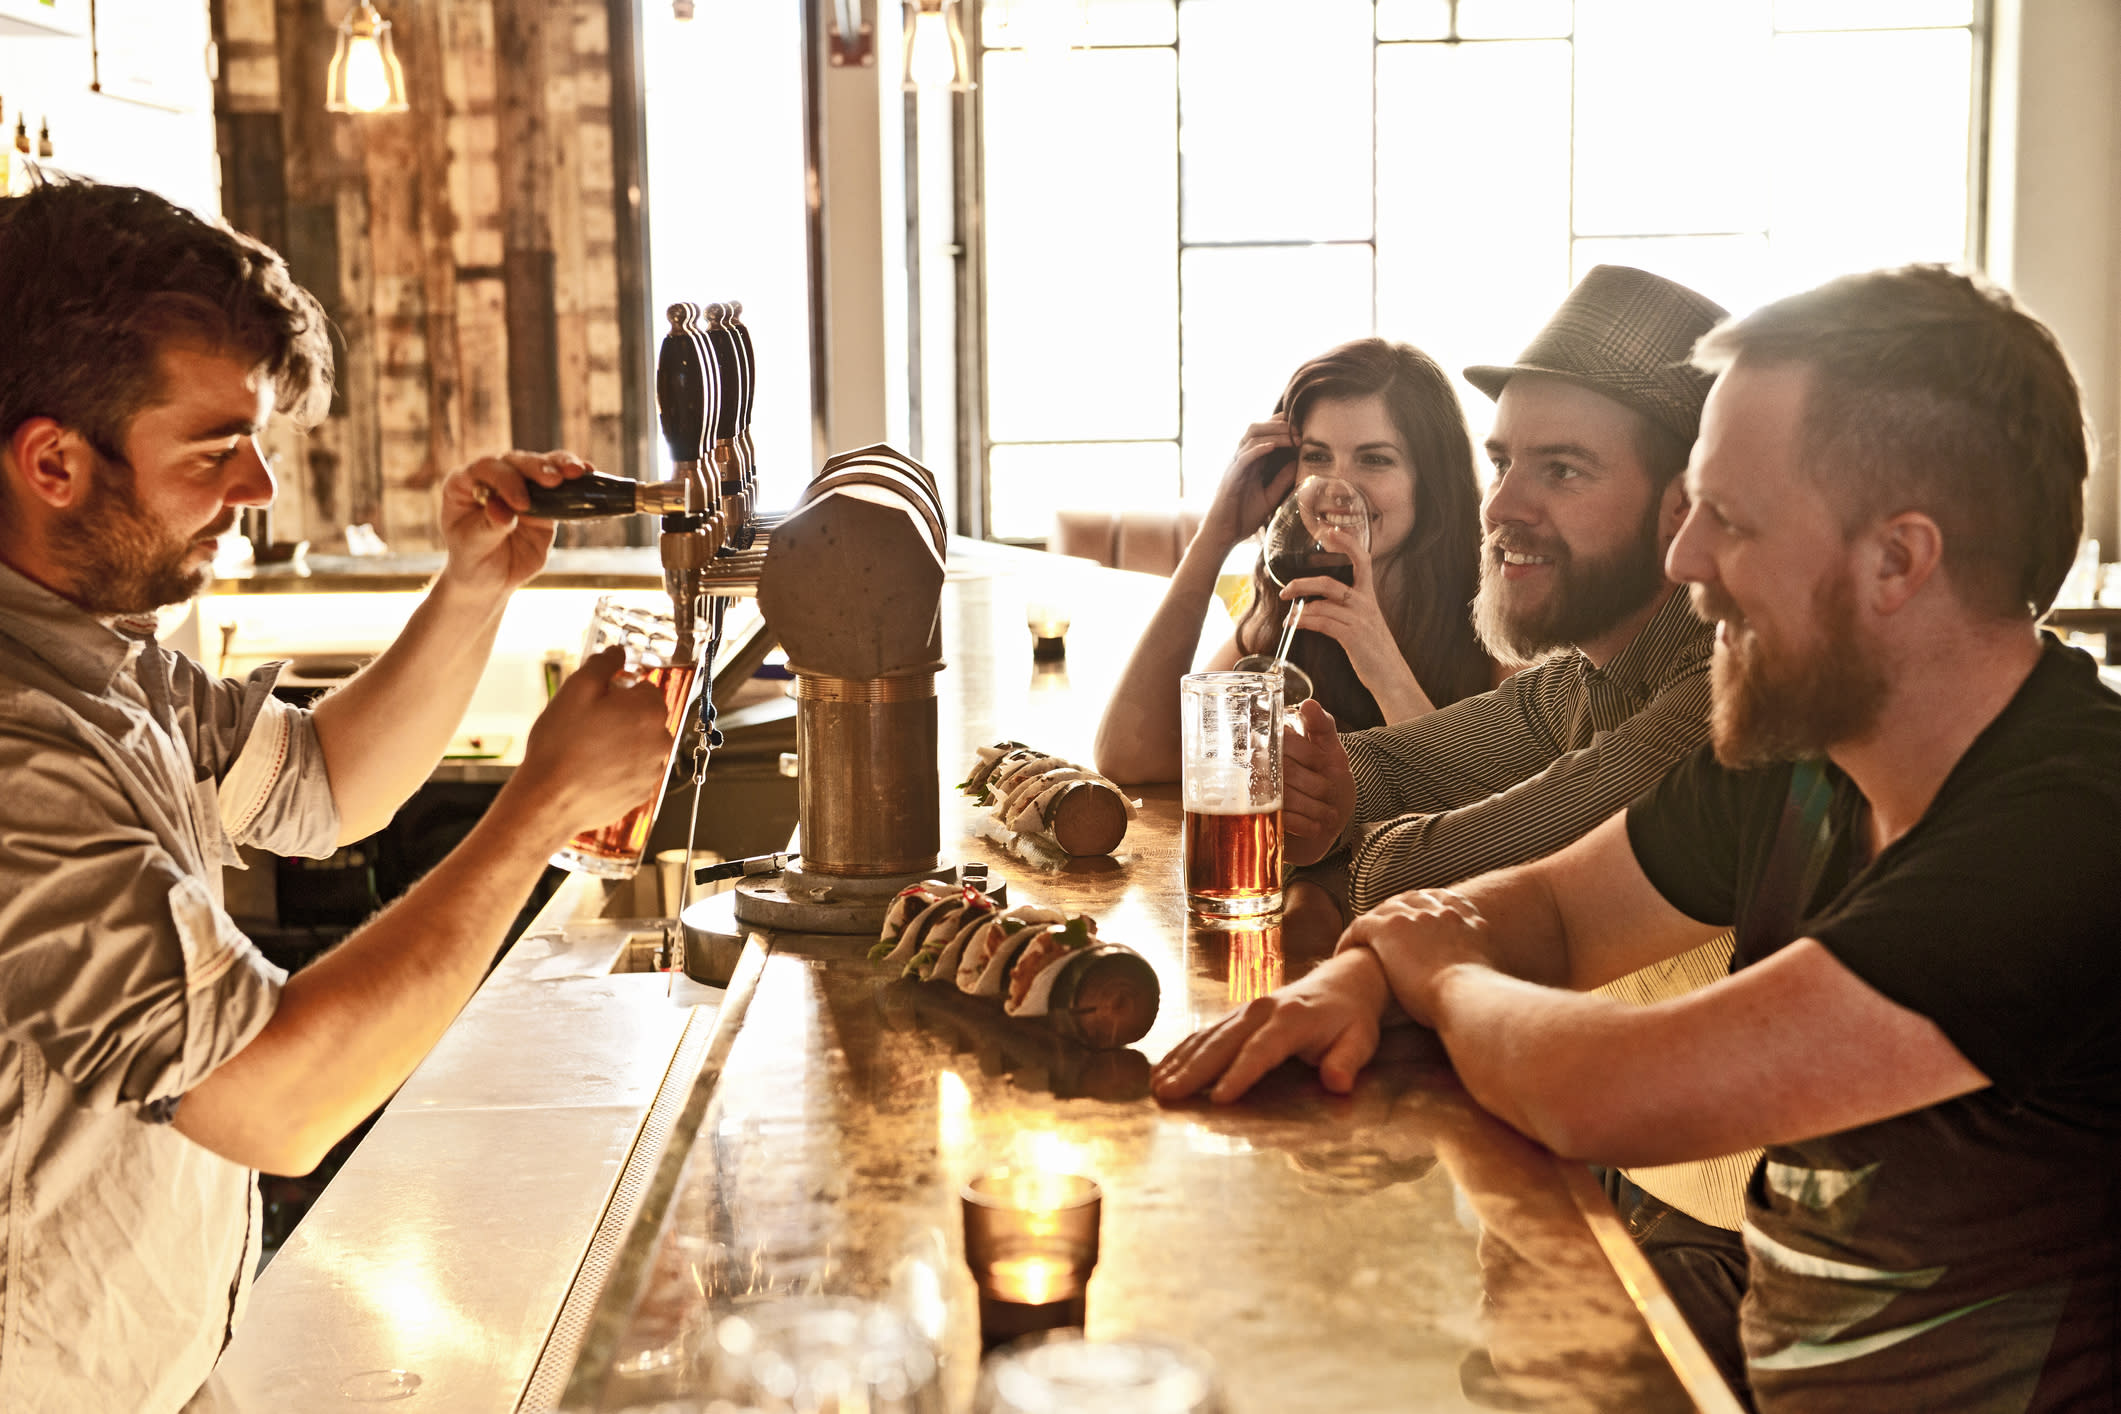 Your mate doesn't actually want to shout you drinks. Here's why